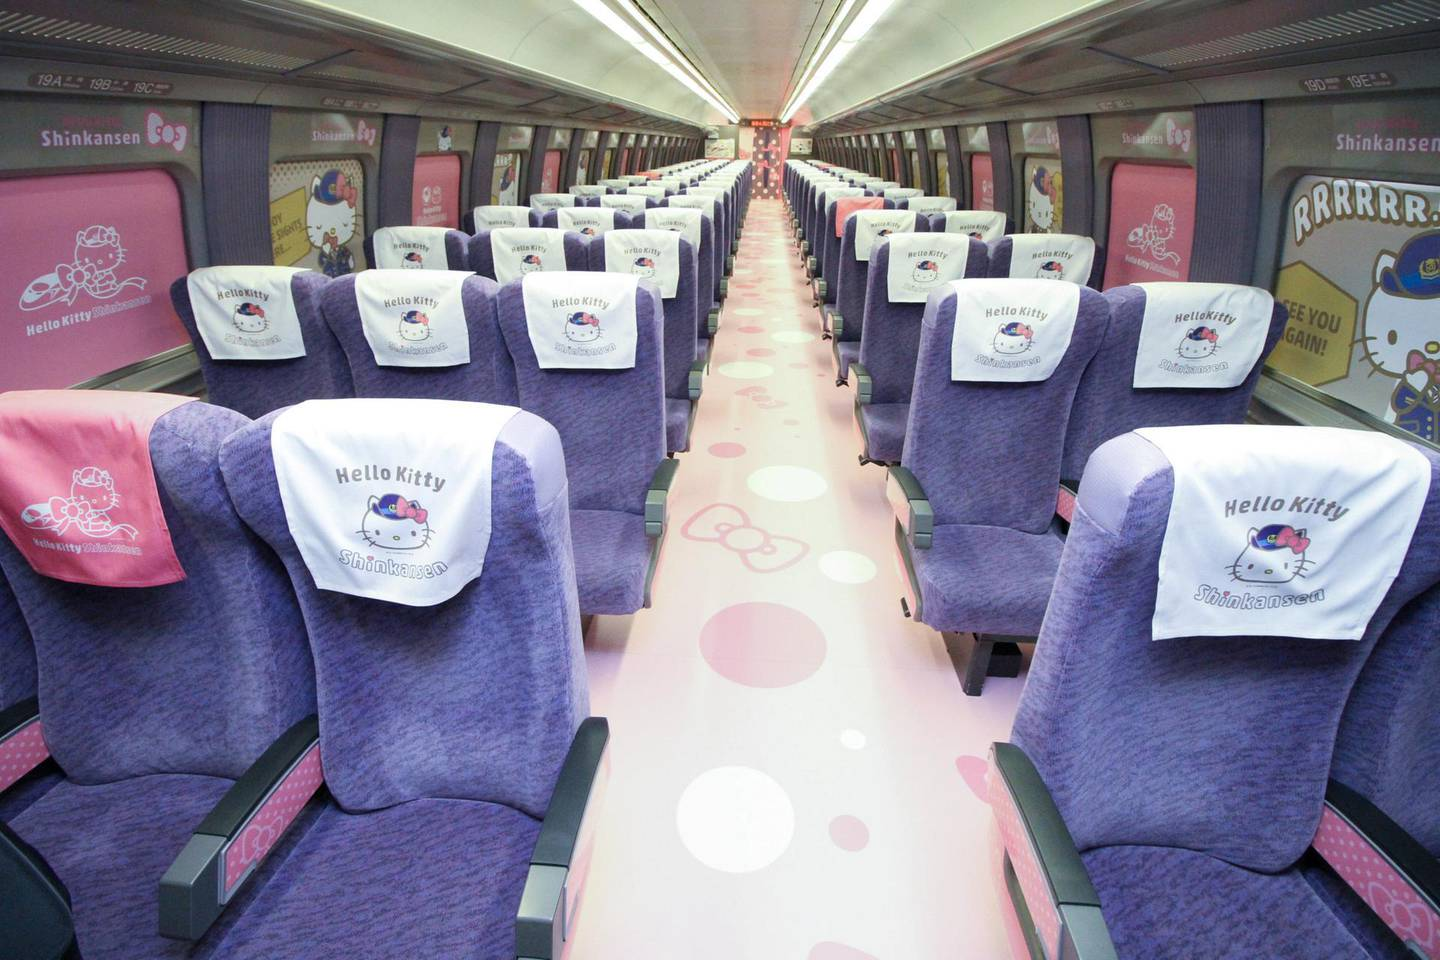 """This handout picture taken on June 25, 2018 and released by West Japan Railway on June 26, 2018 shows the interior of a Shinkansen train adorned with images of popular character Hello Kitty, at the Hakata car maintenance center in Fukuoka prefecture. Resplendent in shocking pink, a sleek """"Hello Kitty"""" bullet train, complete with special carriages festooned with images of the global icon from Japan, has been unveiled before chugging into service this week starting June 25. / AFP PHOTO / West Japan Railway / Handout / -----EDITORS NOTE --- RESTRICTED TO EDITORIAL USE - MANDATORY CREDIT """"AFP PHOTO / West Japan Railway"""" - NO MARKETING - NO ADVERTISING CAMPAIGNS - DISTRIBUTED AS A SERVICE TO CLIENTS - NO ARCHIVES"""